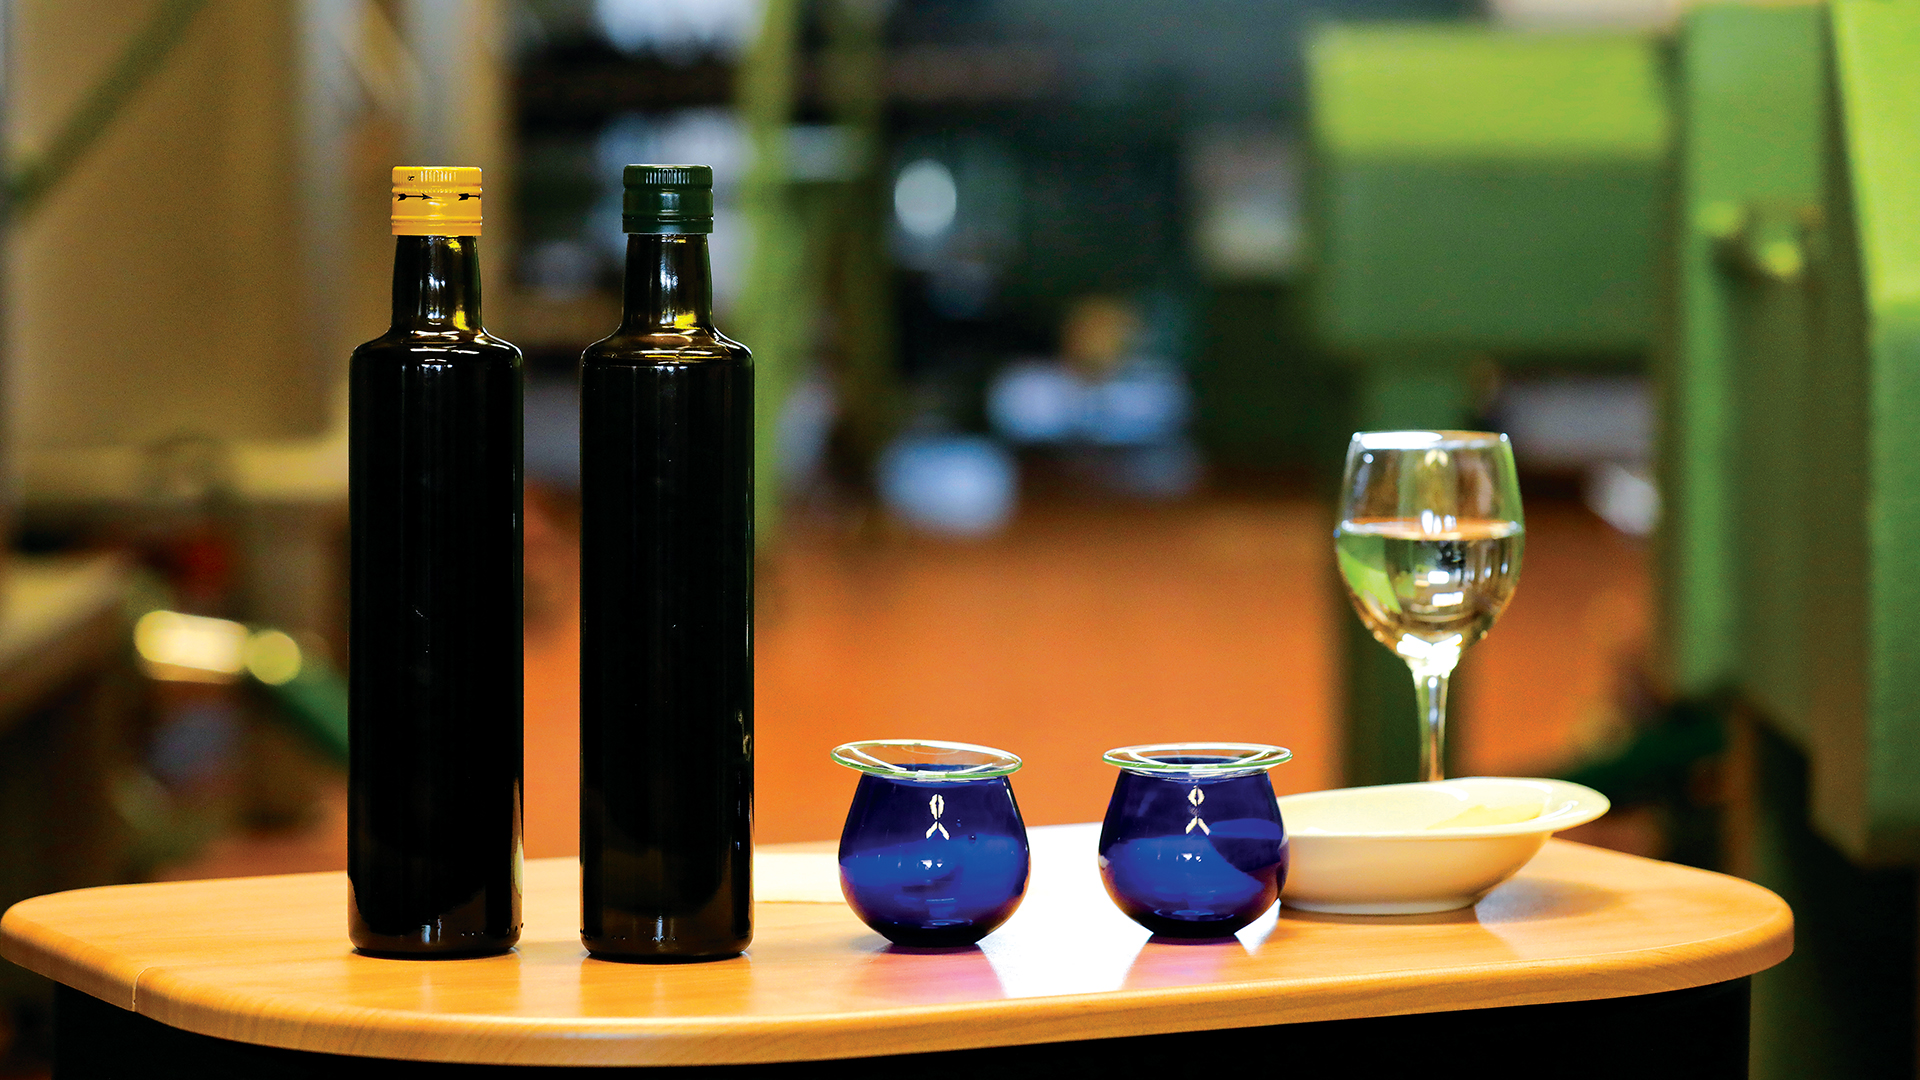 Table with olive oil bottles, glasses, a glass of water and apple slices